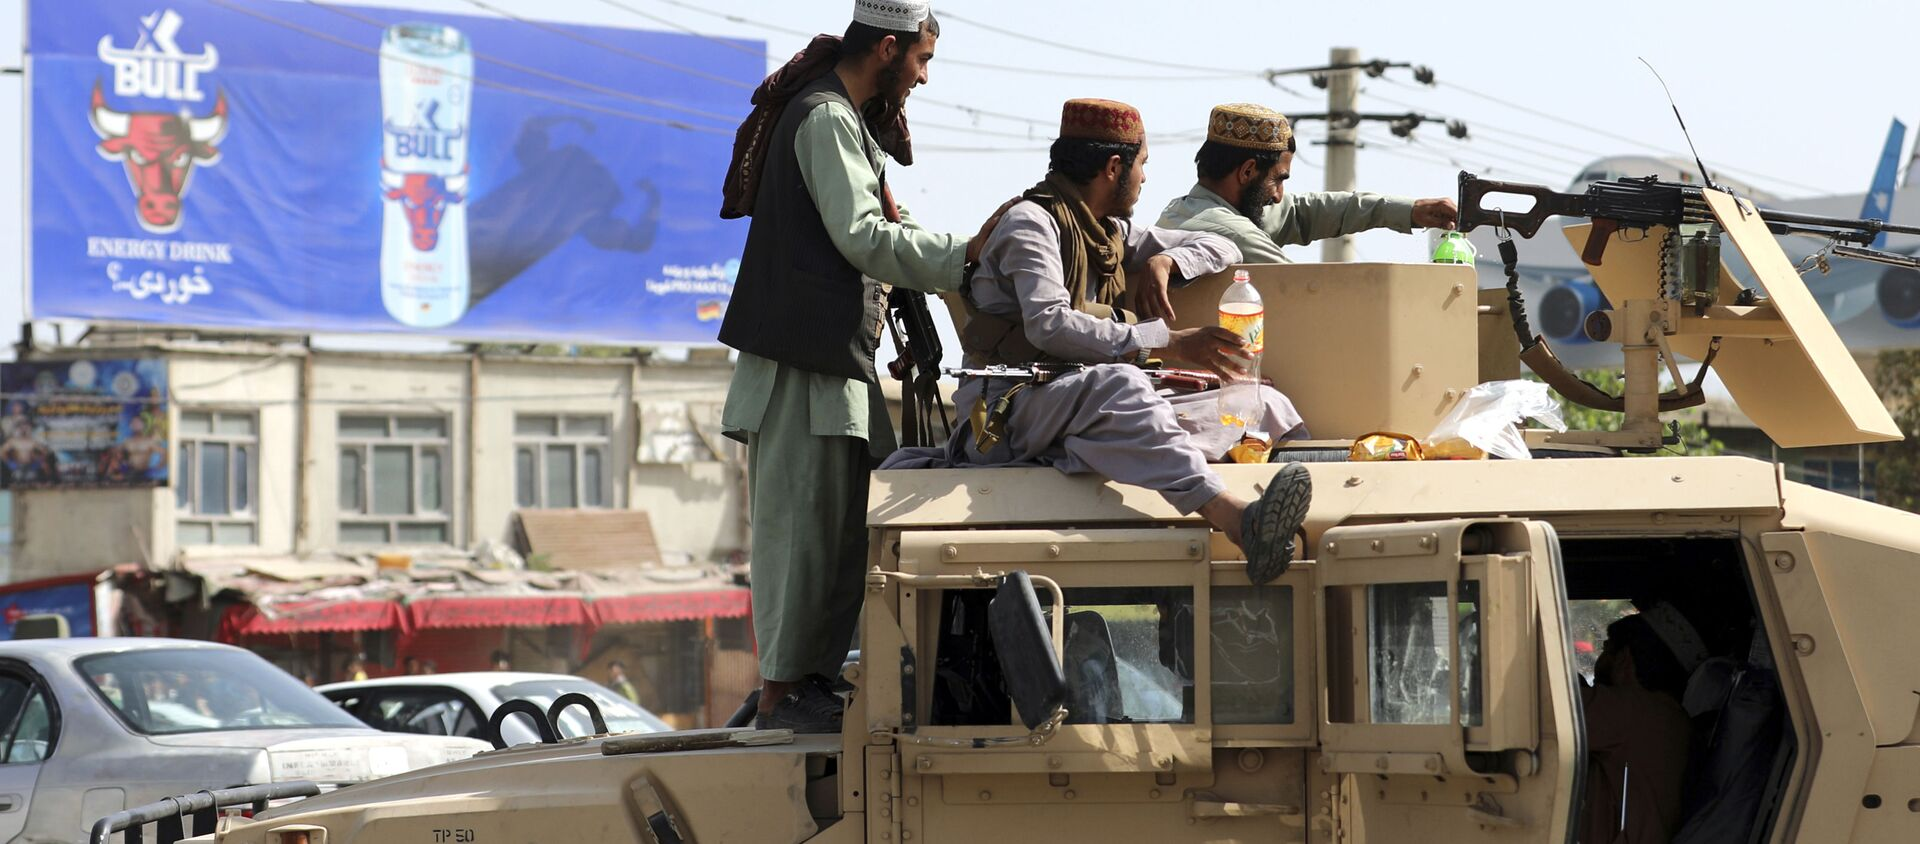 Taliban fighters stand guard in front of the Hamid Karzai International Airport, in Kabul, Afghanistan, Monday, Aug. 16, 2021. - Sputnik International, 1920, 31.08.2021